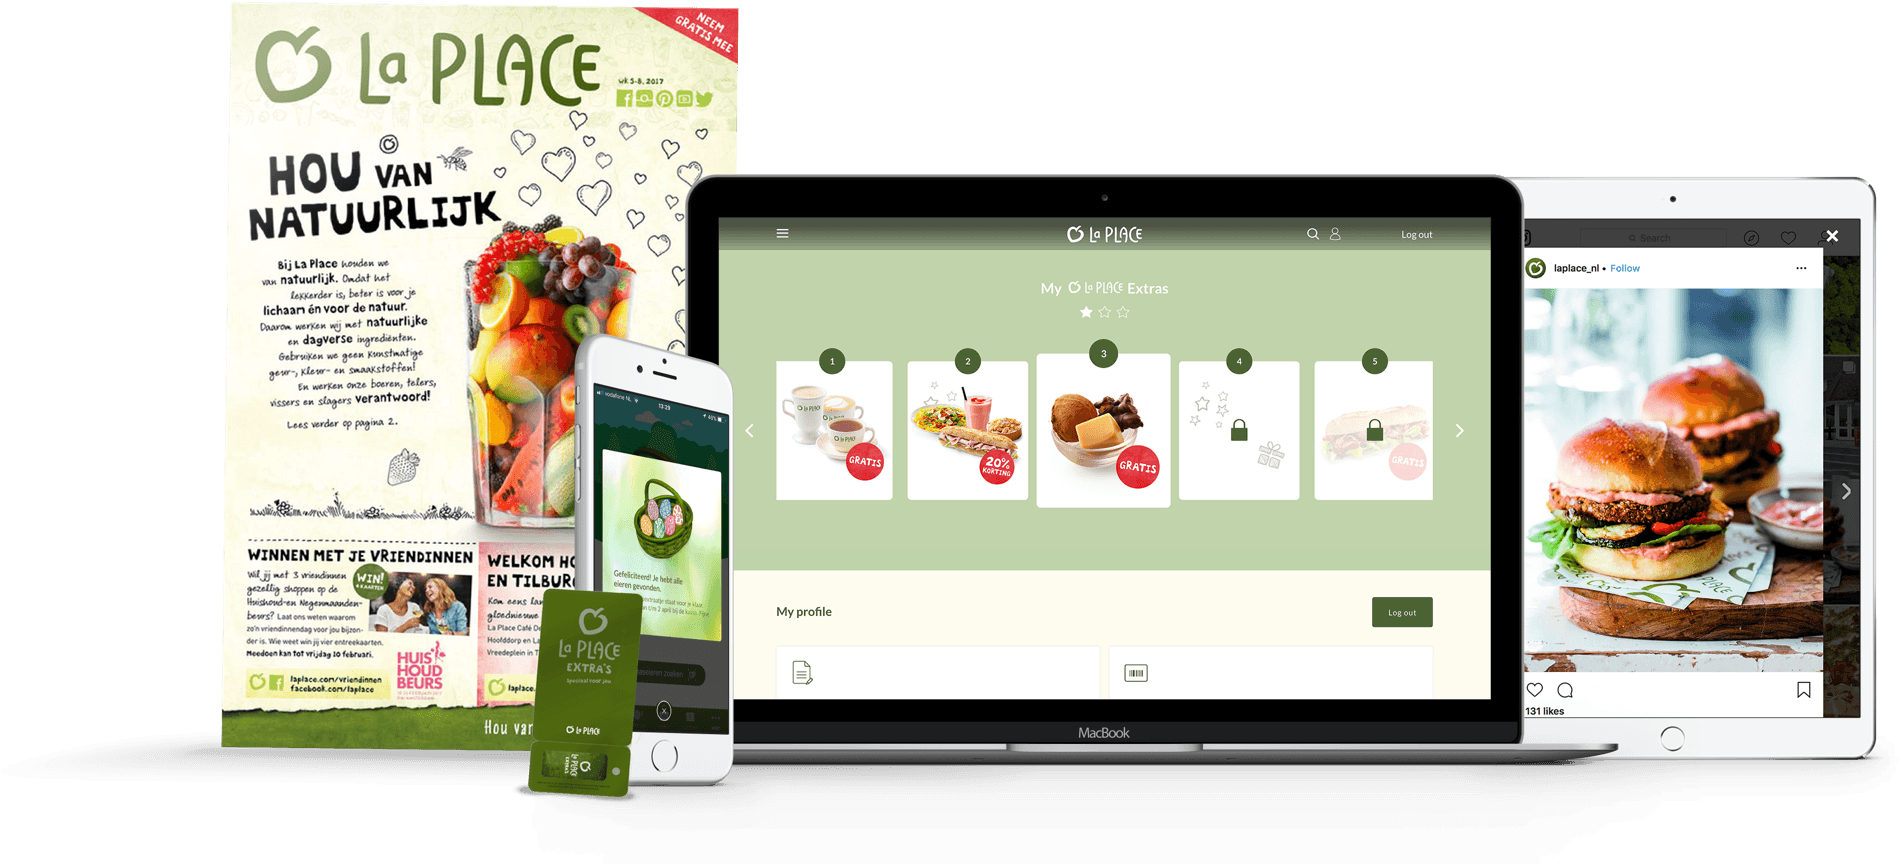 La Place Extra's omni-channel restaurant loyalty program